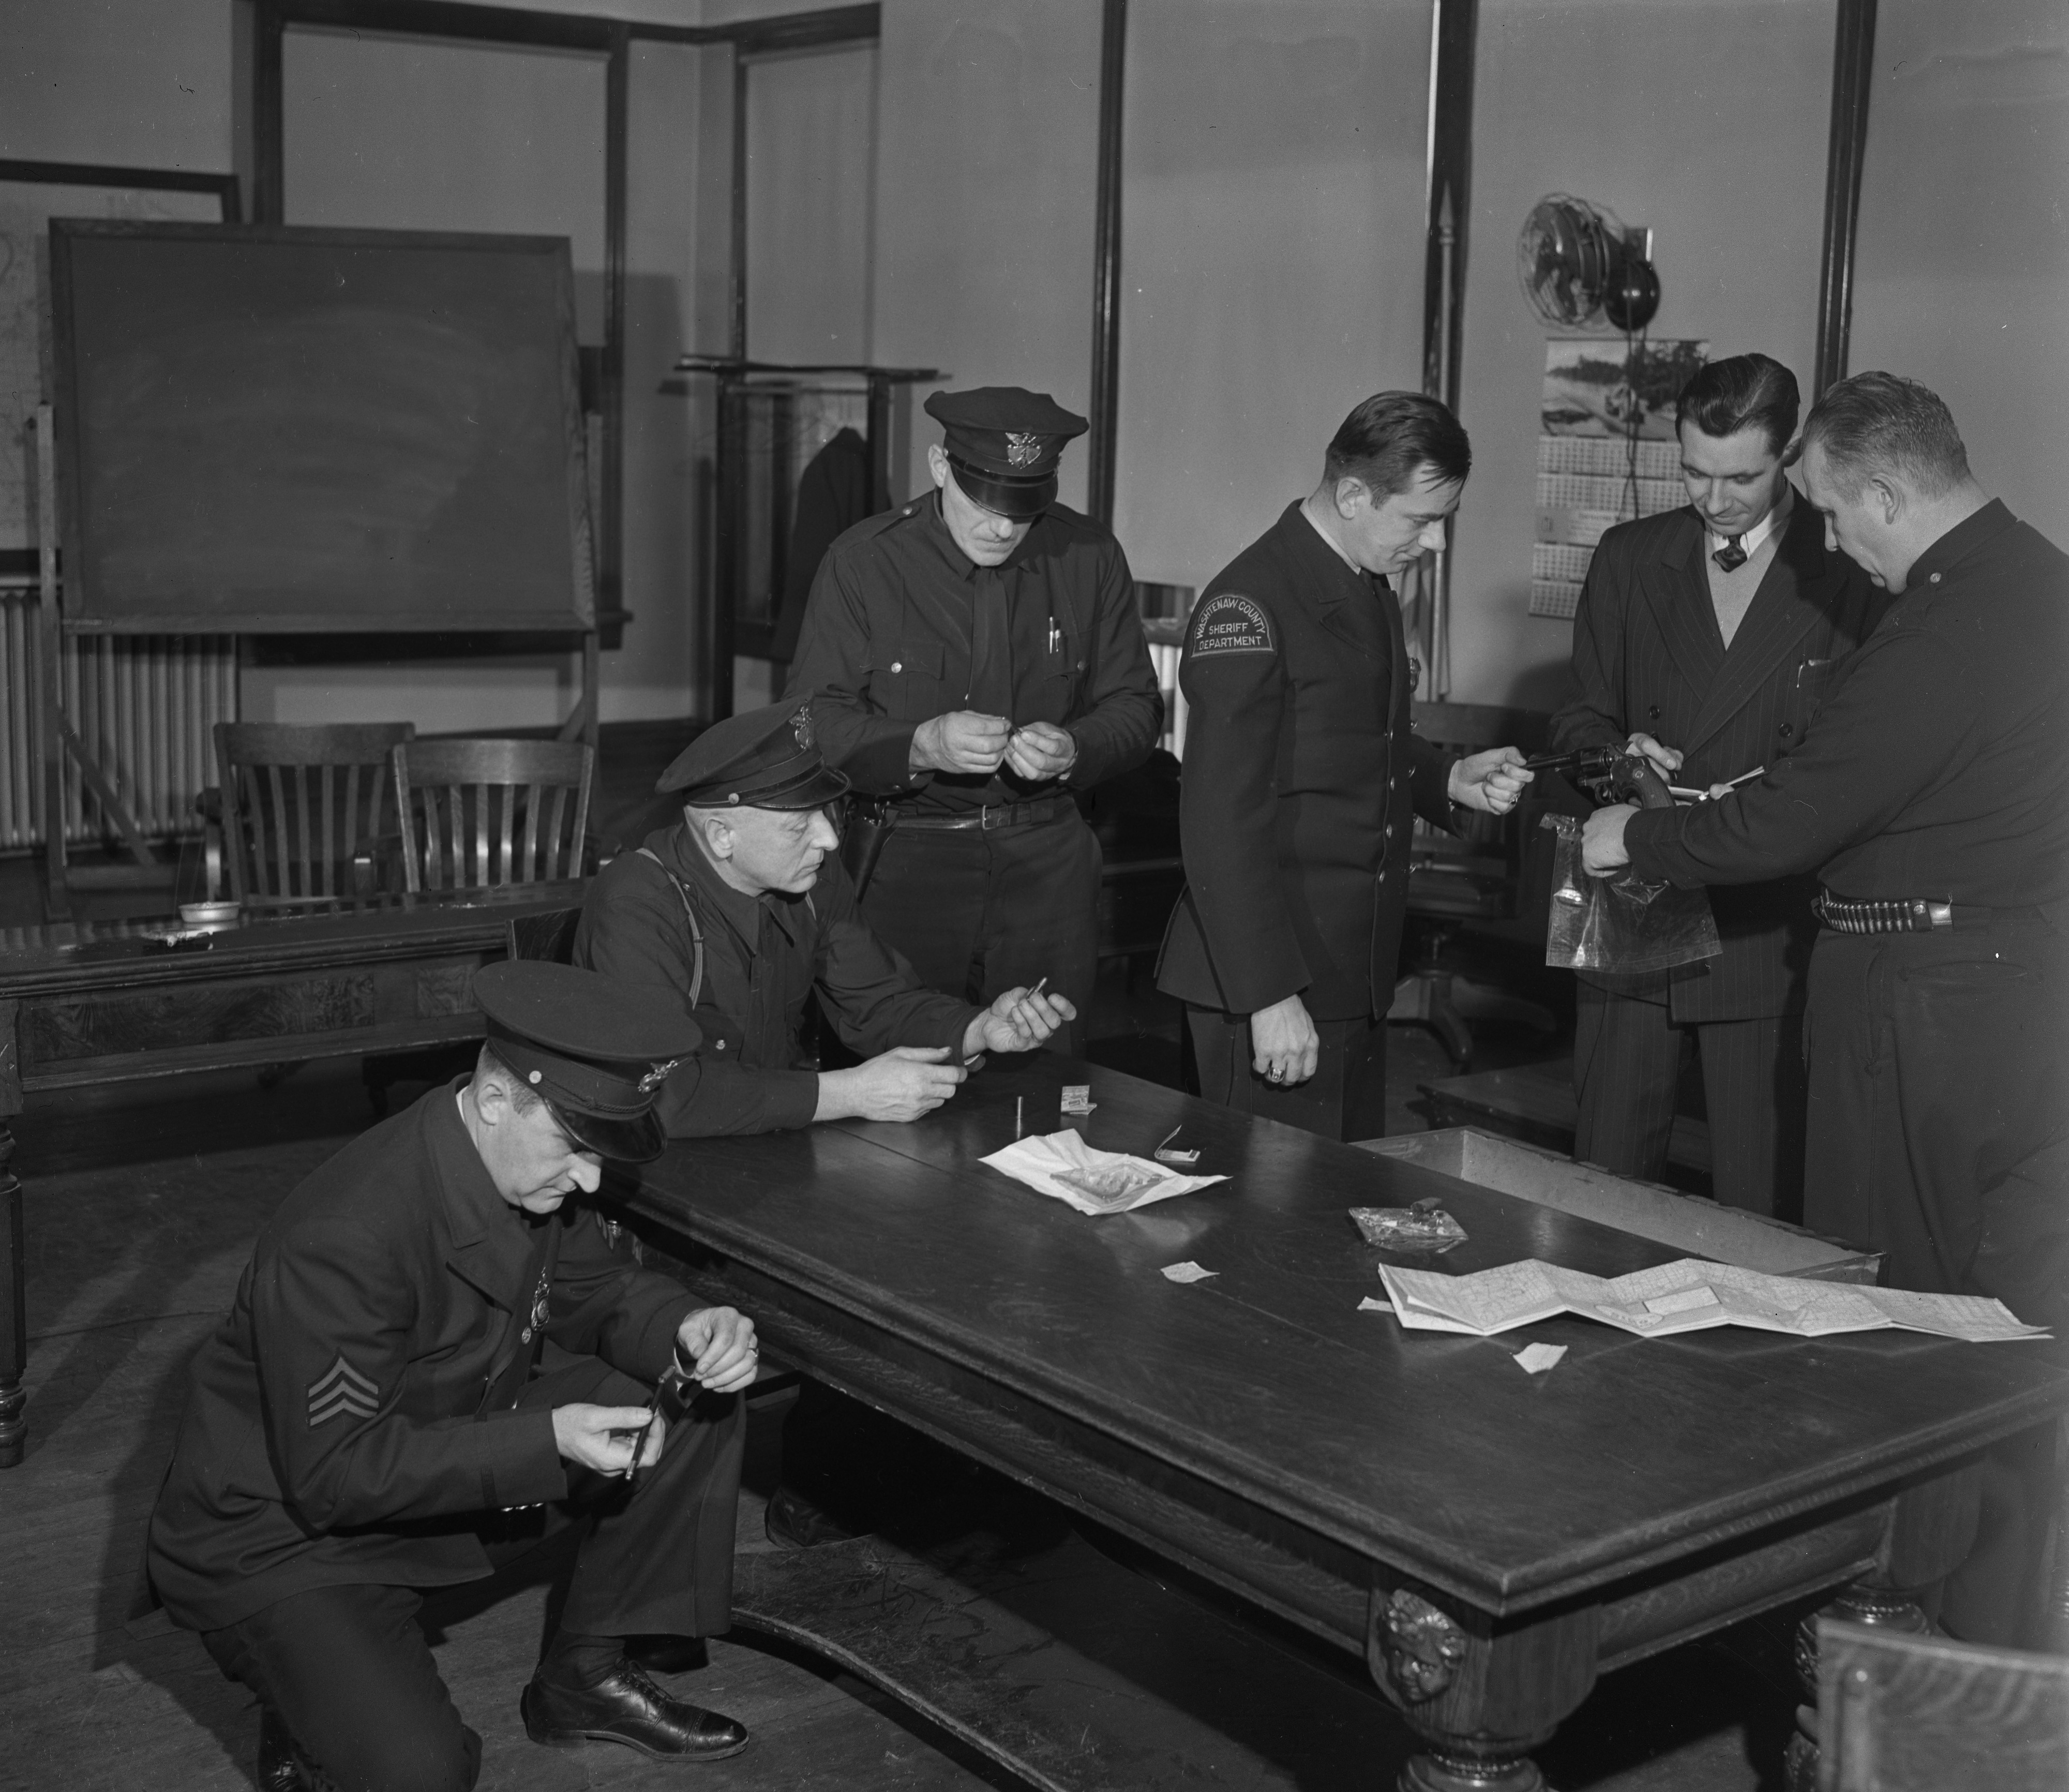 FBI School for Local Law Enforcement Officers at Ann Arbor City Hall, February 1947 image